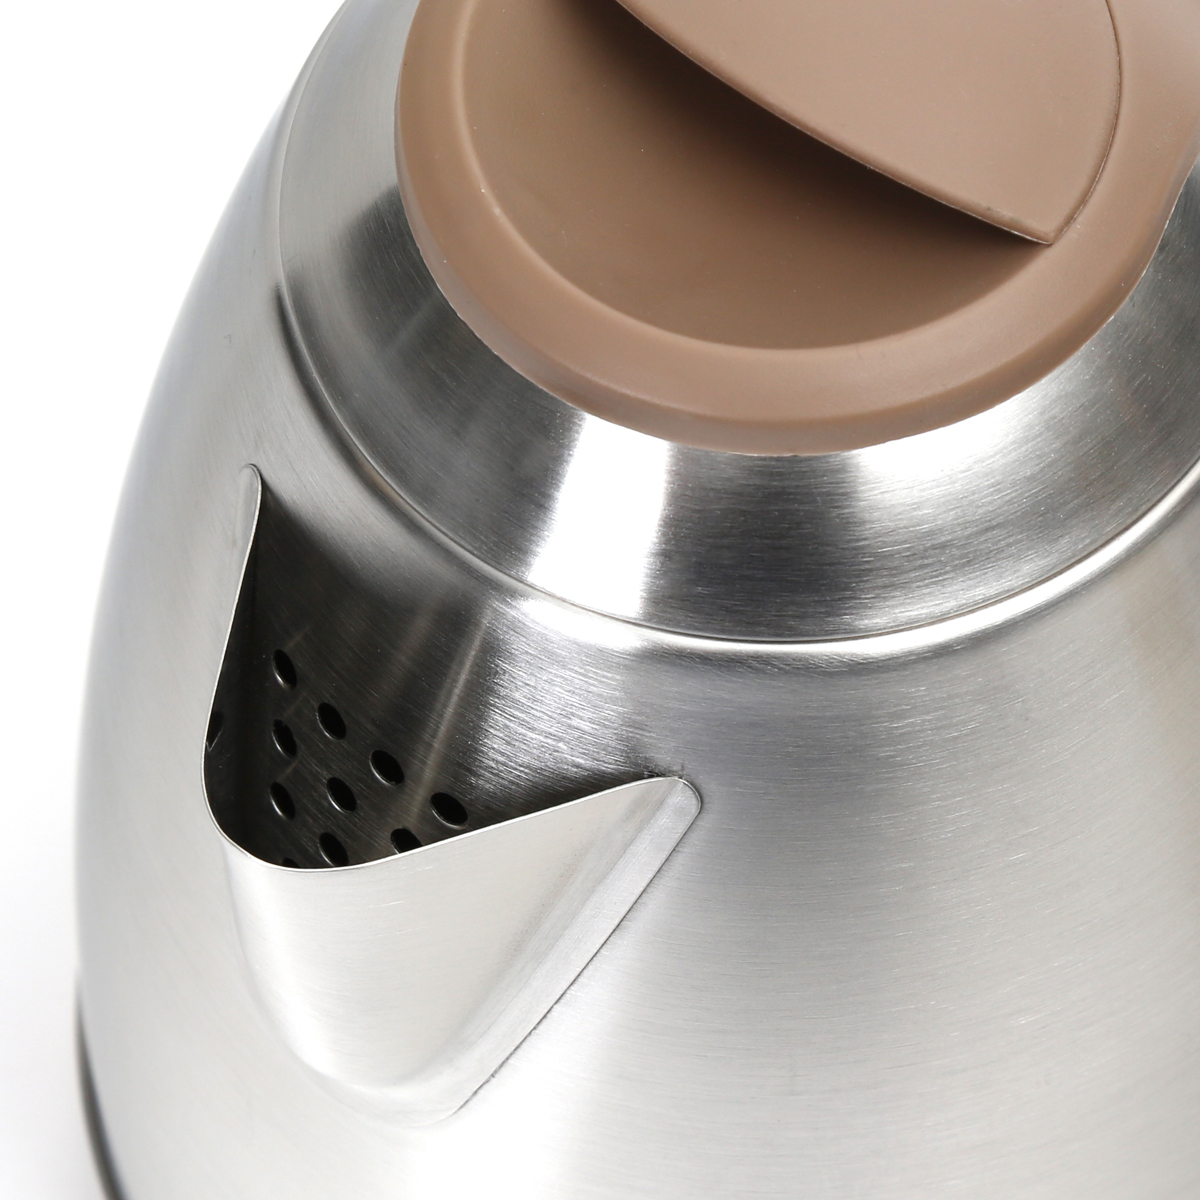 ELECTRIC KETTLE 1500W STAINLESS STEEL BRUSHED FINISH WHITE/BEIGE